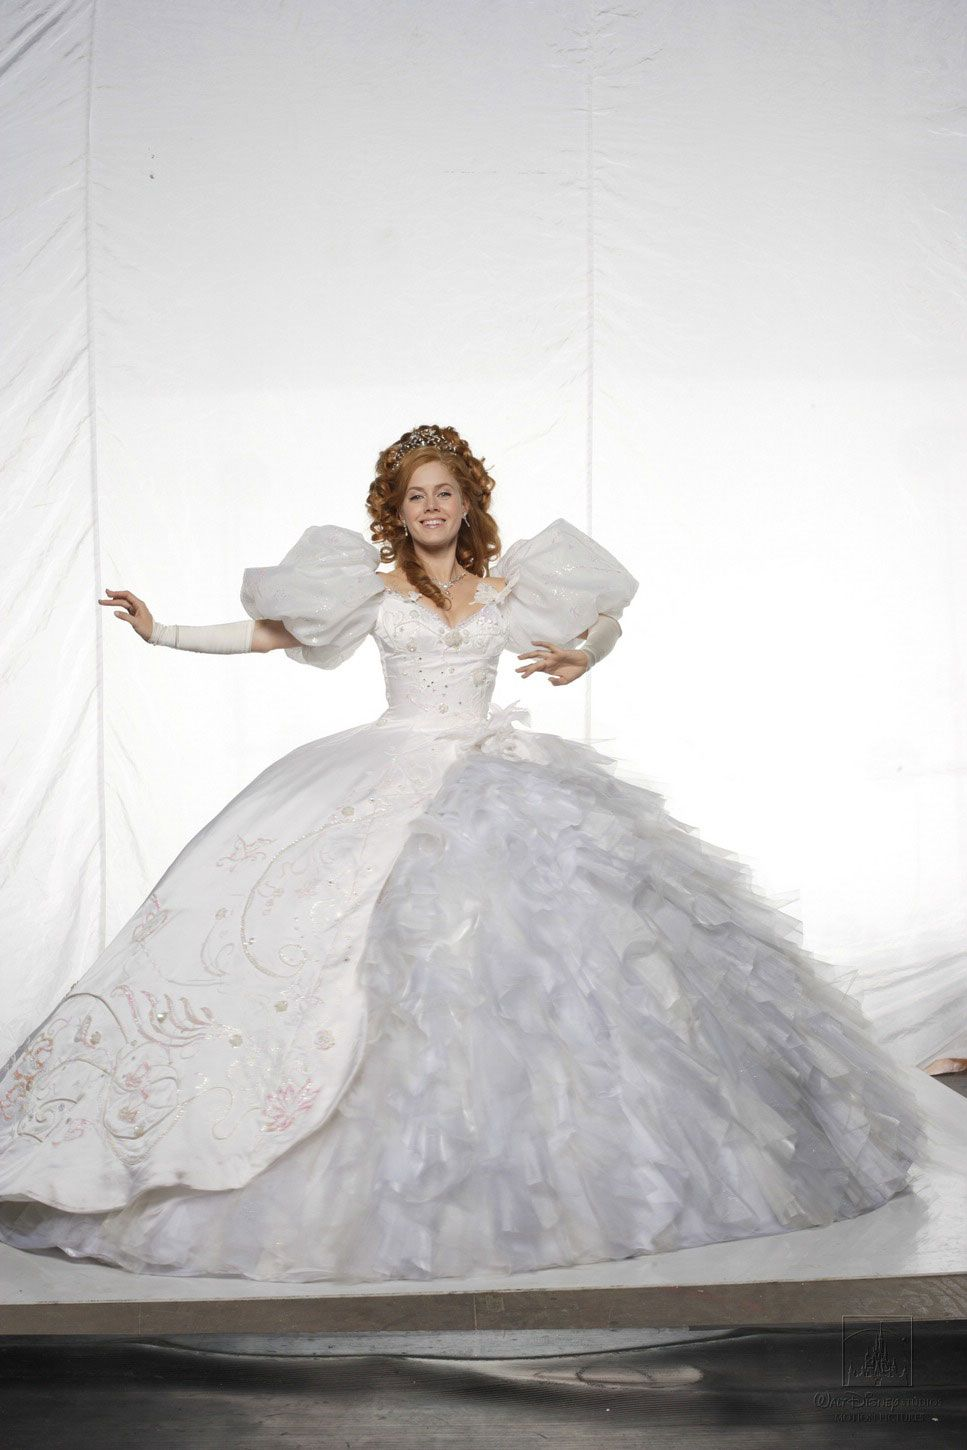 Amy Adams, wearing Giselles wedding gown from Disneys Enchanted ...